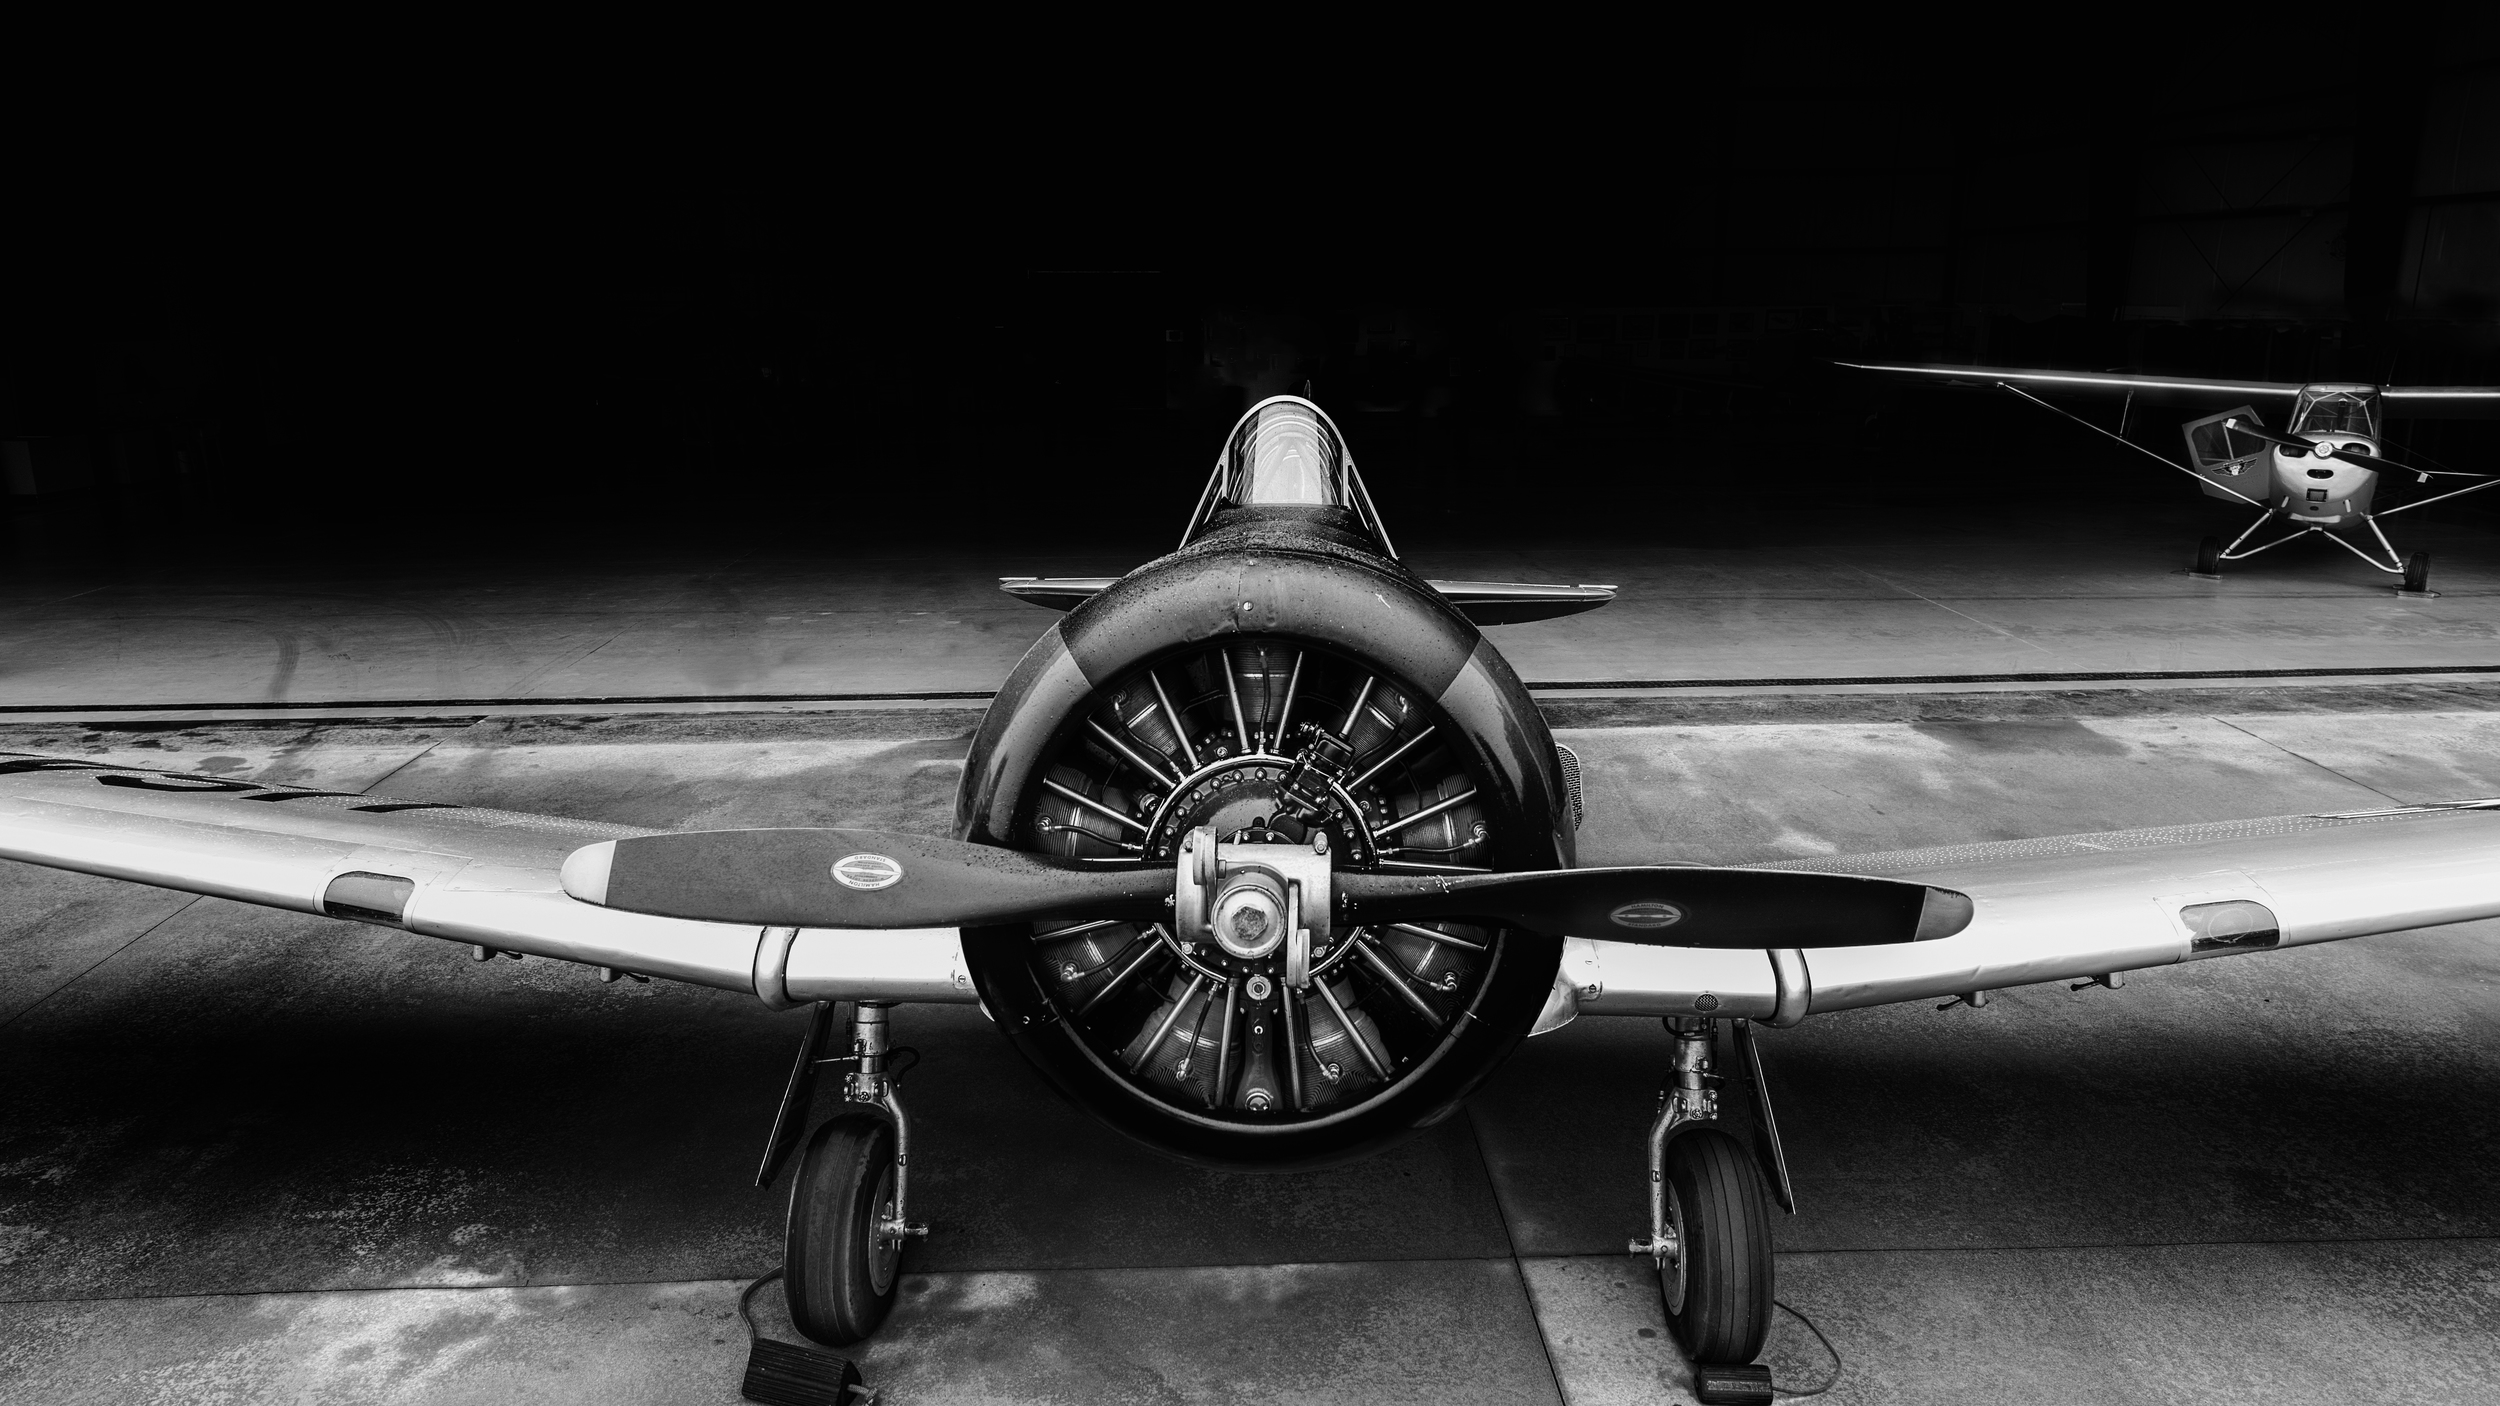 Emerging Texan: A US LT-6 Texan aircraft with an L-16 in the background. This photograph makes me think the Texan is emerging from the hangar to get ready for its next mission during World War II.